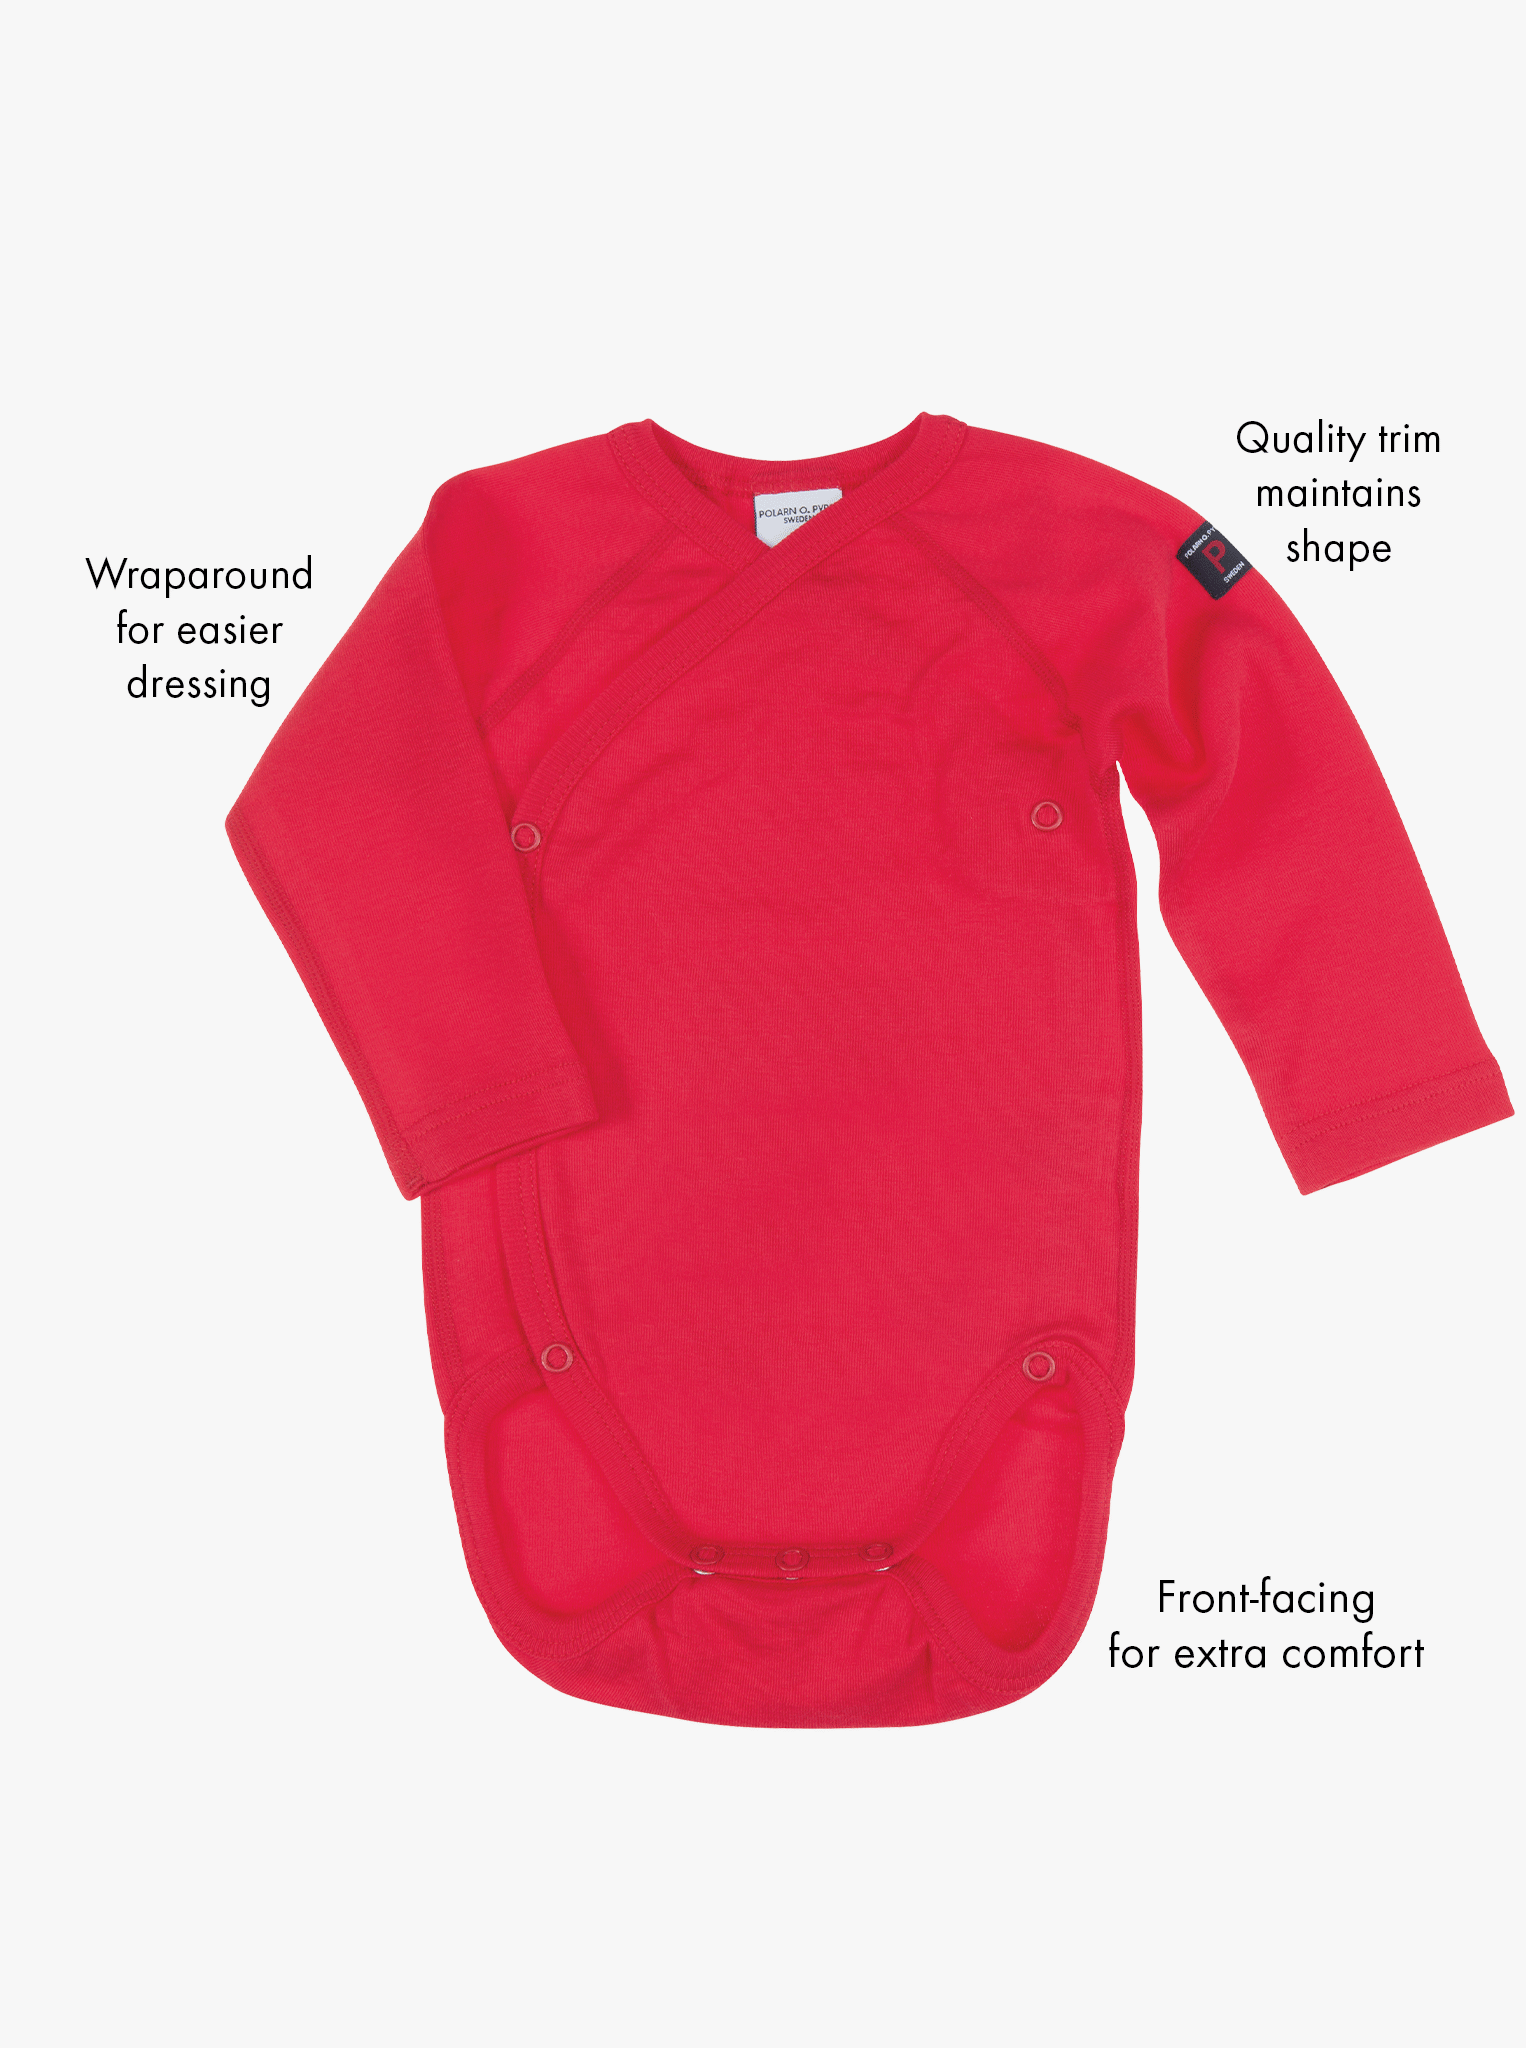 Front view of the red long sleeve wrap around baby grow in organic cotton, with features shown as text labels on the side.